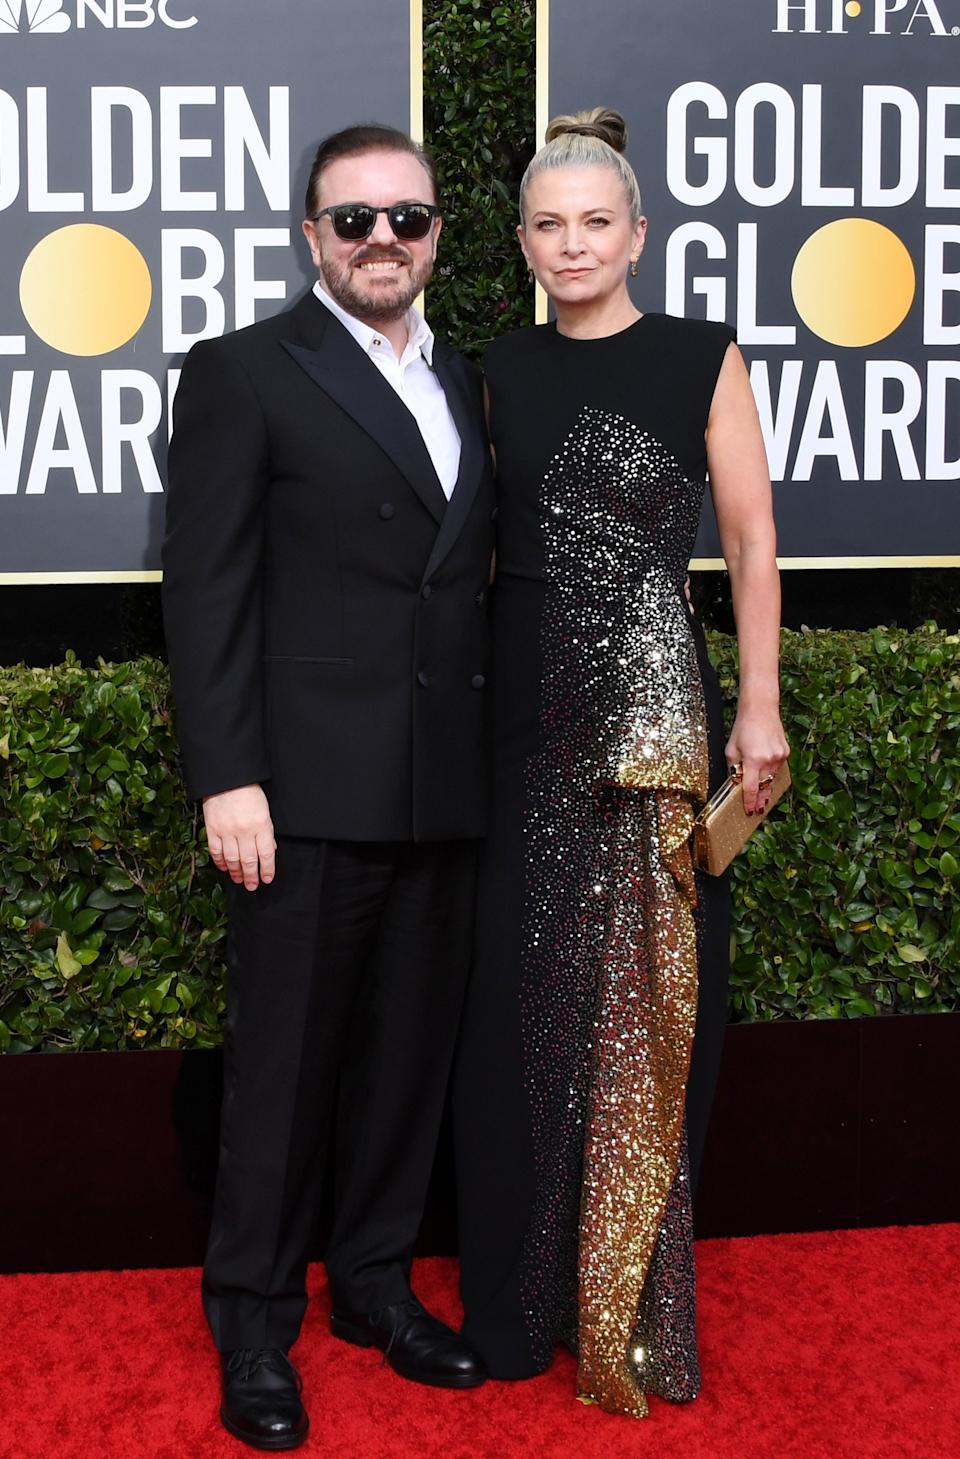 "<h1 class=""title"">Ricky Gervais and Jane Fallon</h1><cite class=""credit"">Photo: Getty Images</cite>"